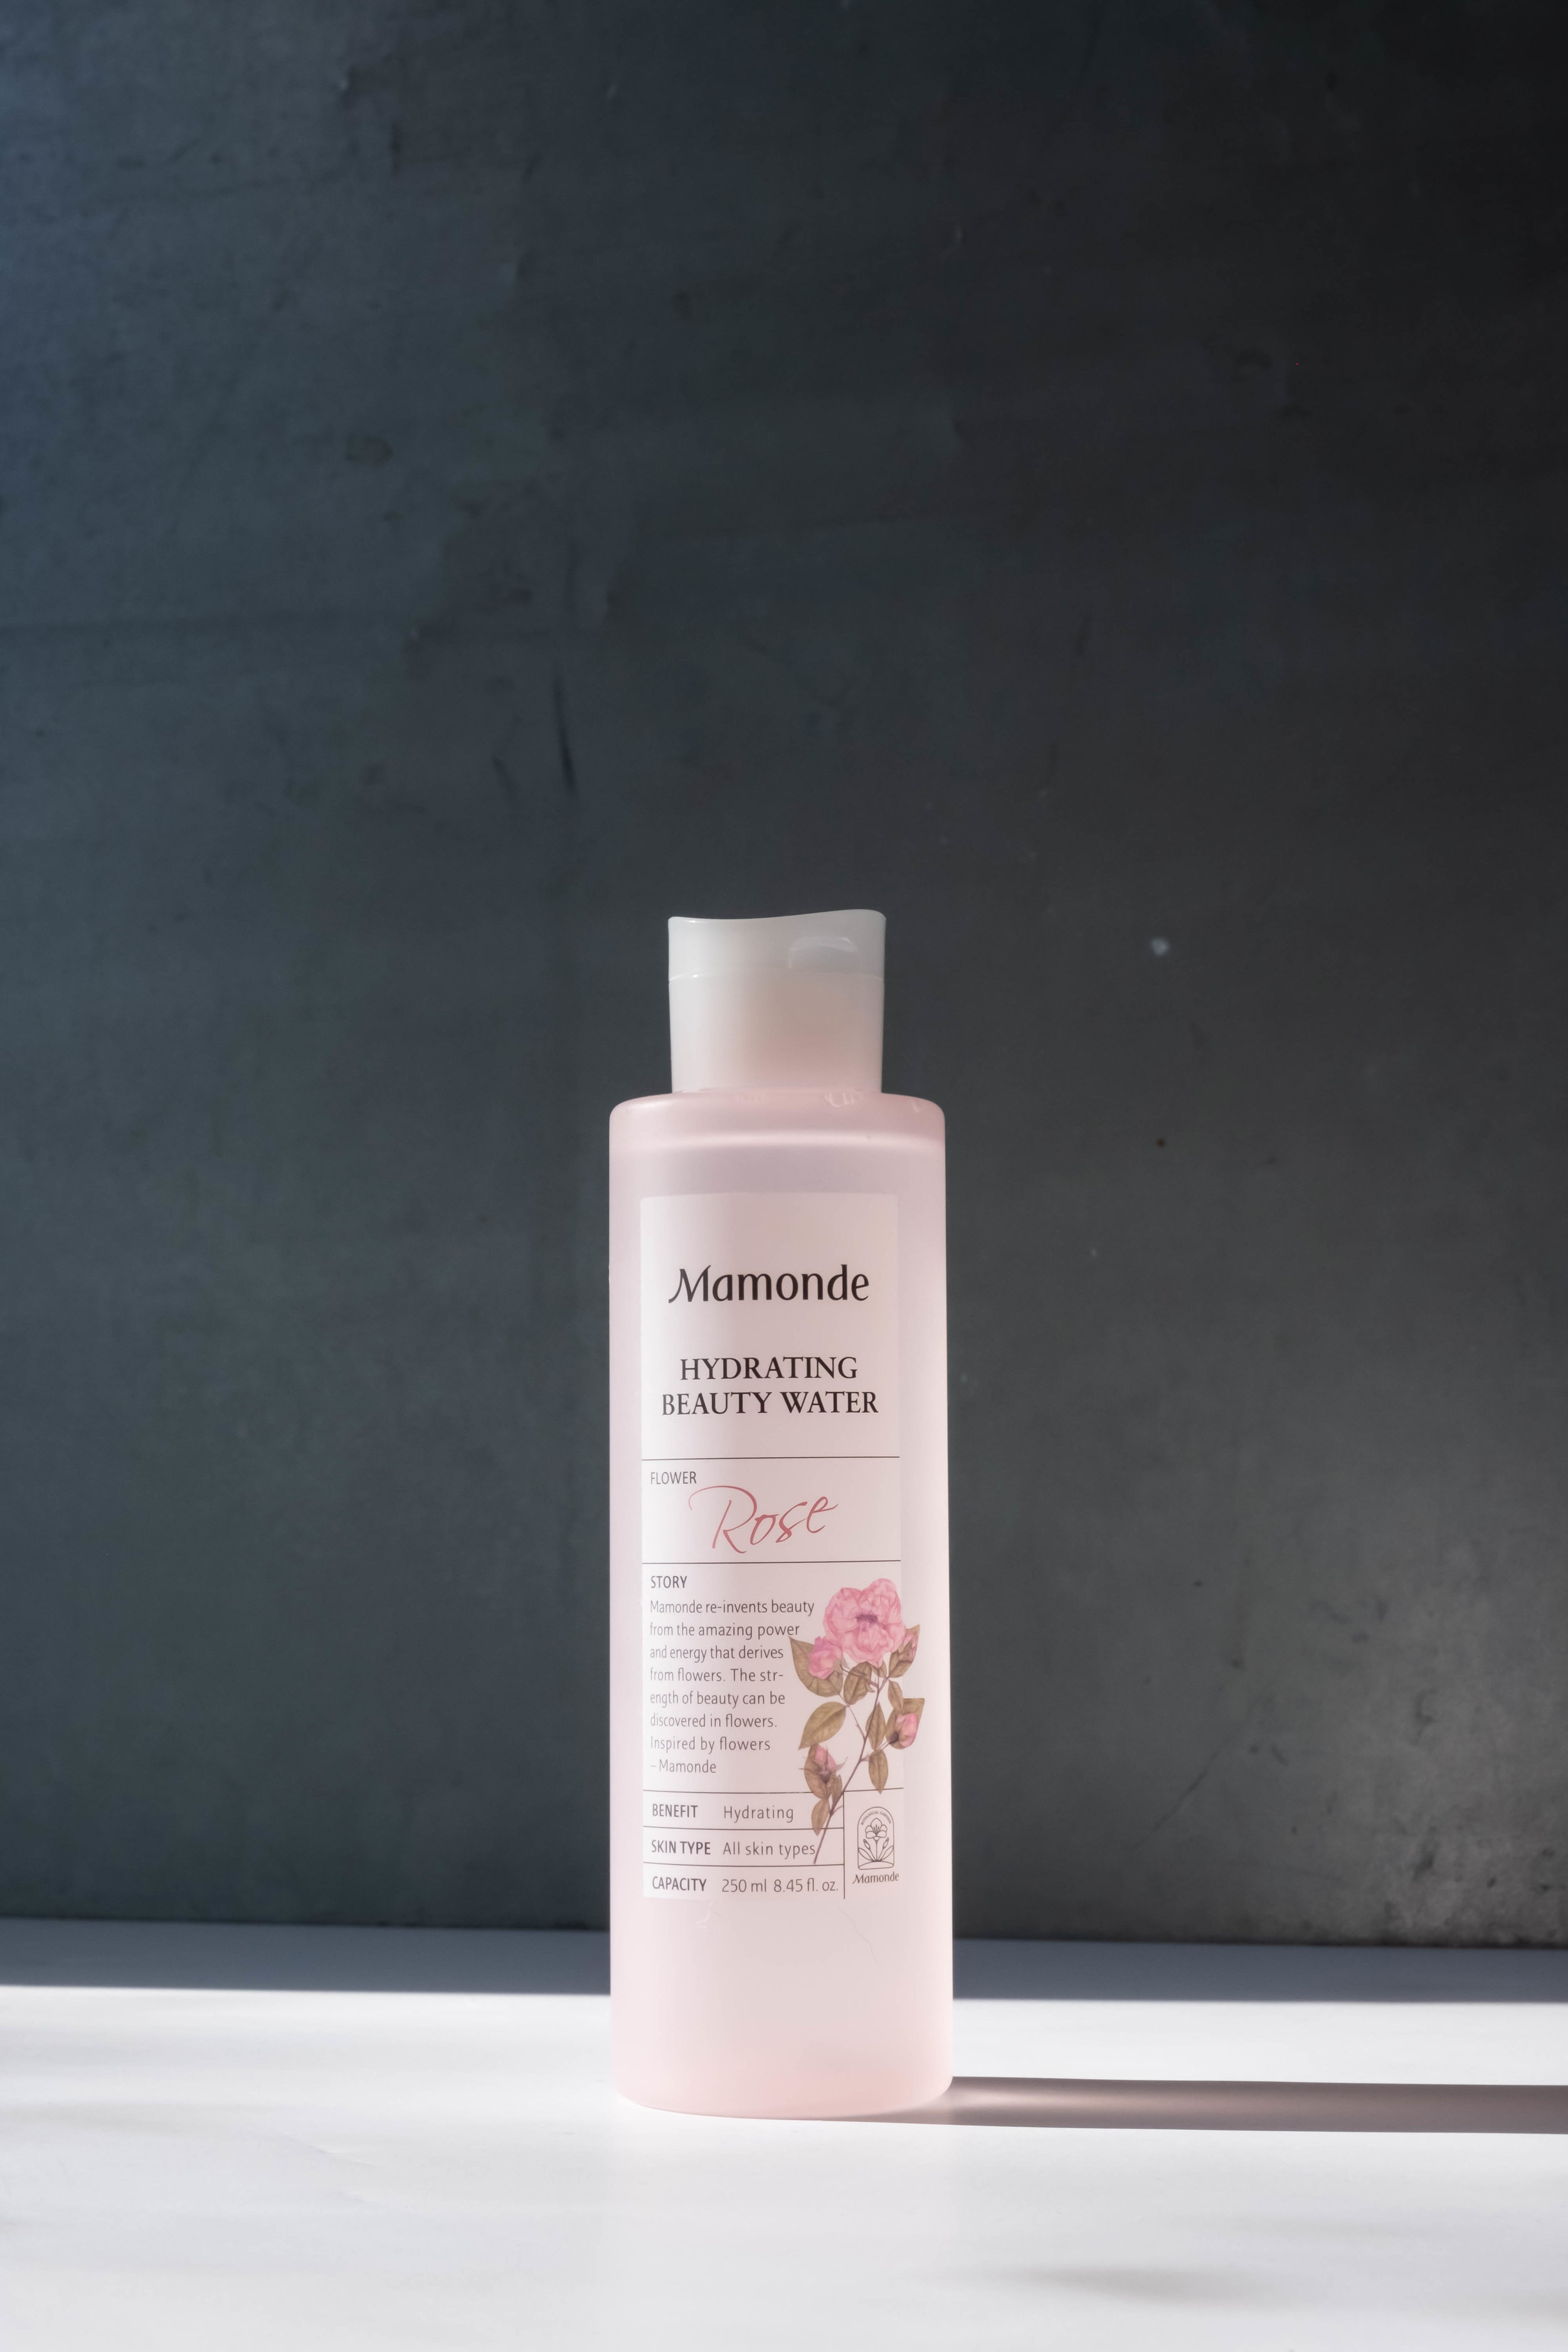 ROSE & IVY Journal Beauty Waters to Try Mamonde Rose Water Beauty Water